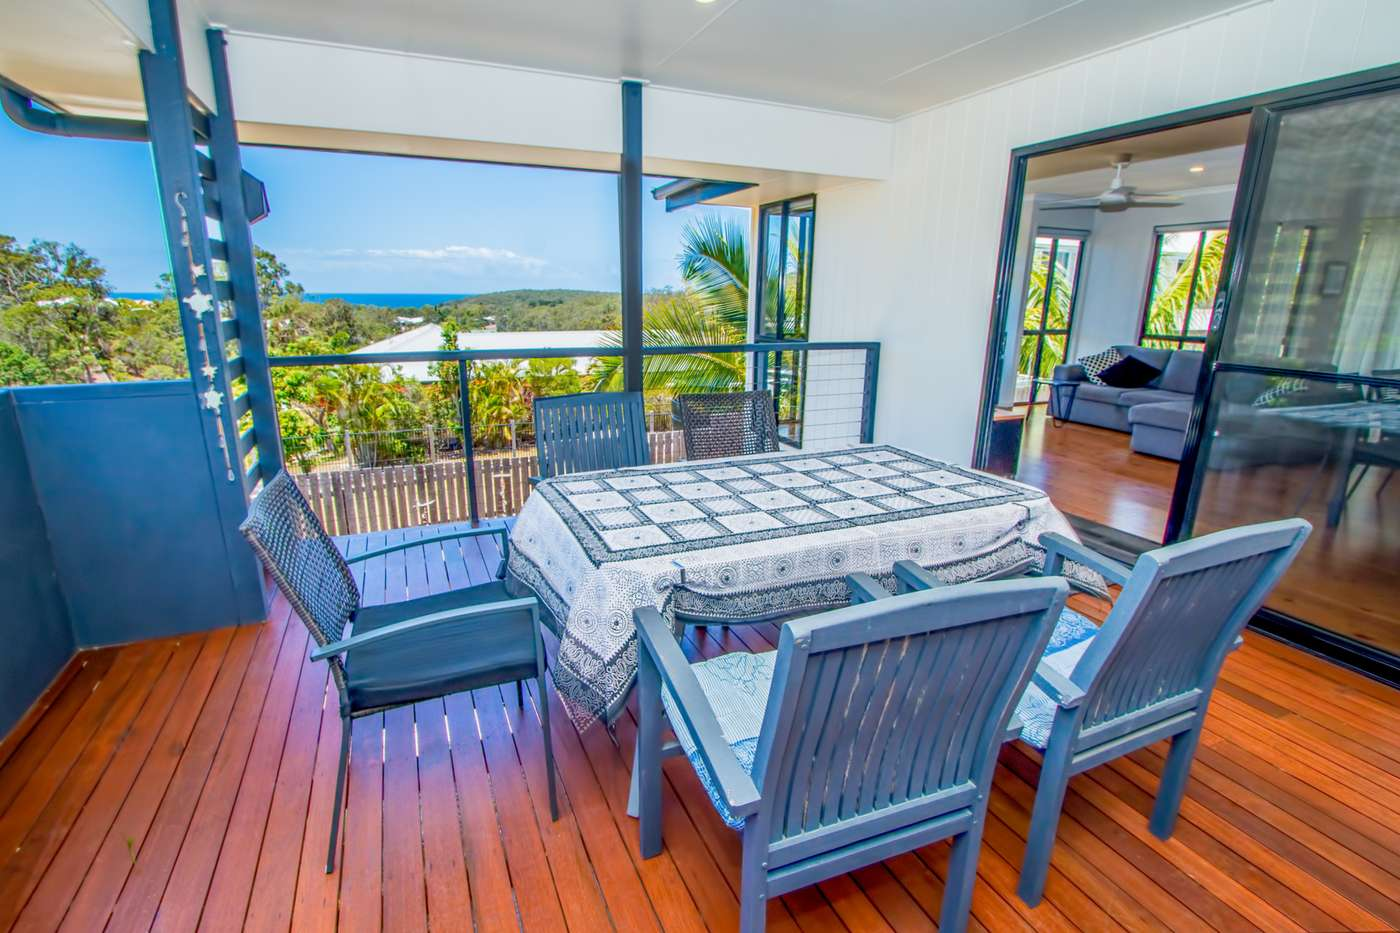 Main view of Homely house listing, 32 Starfish Street, Agnes Water, QLD 4677